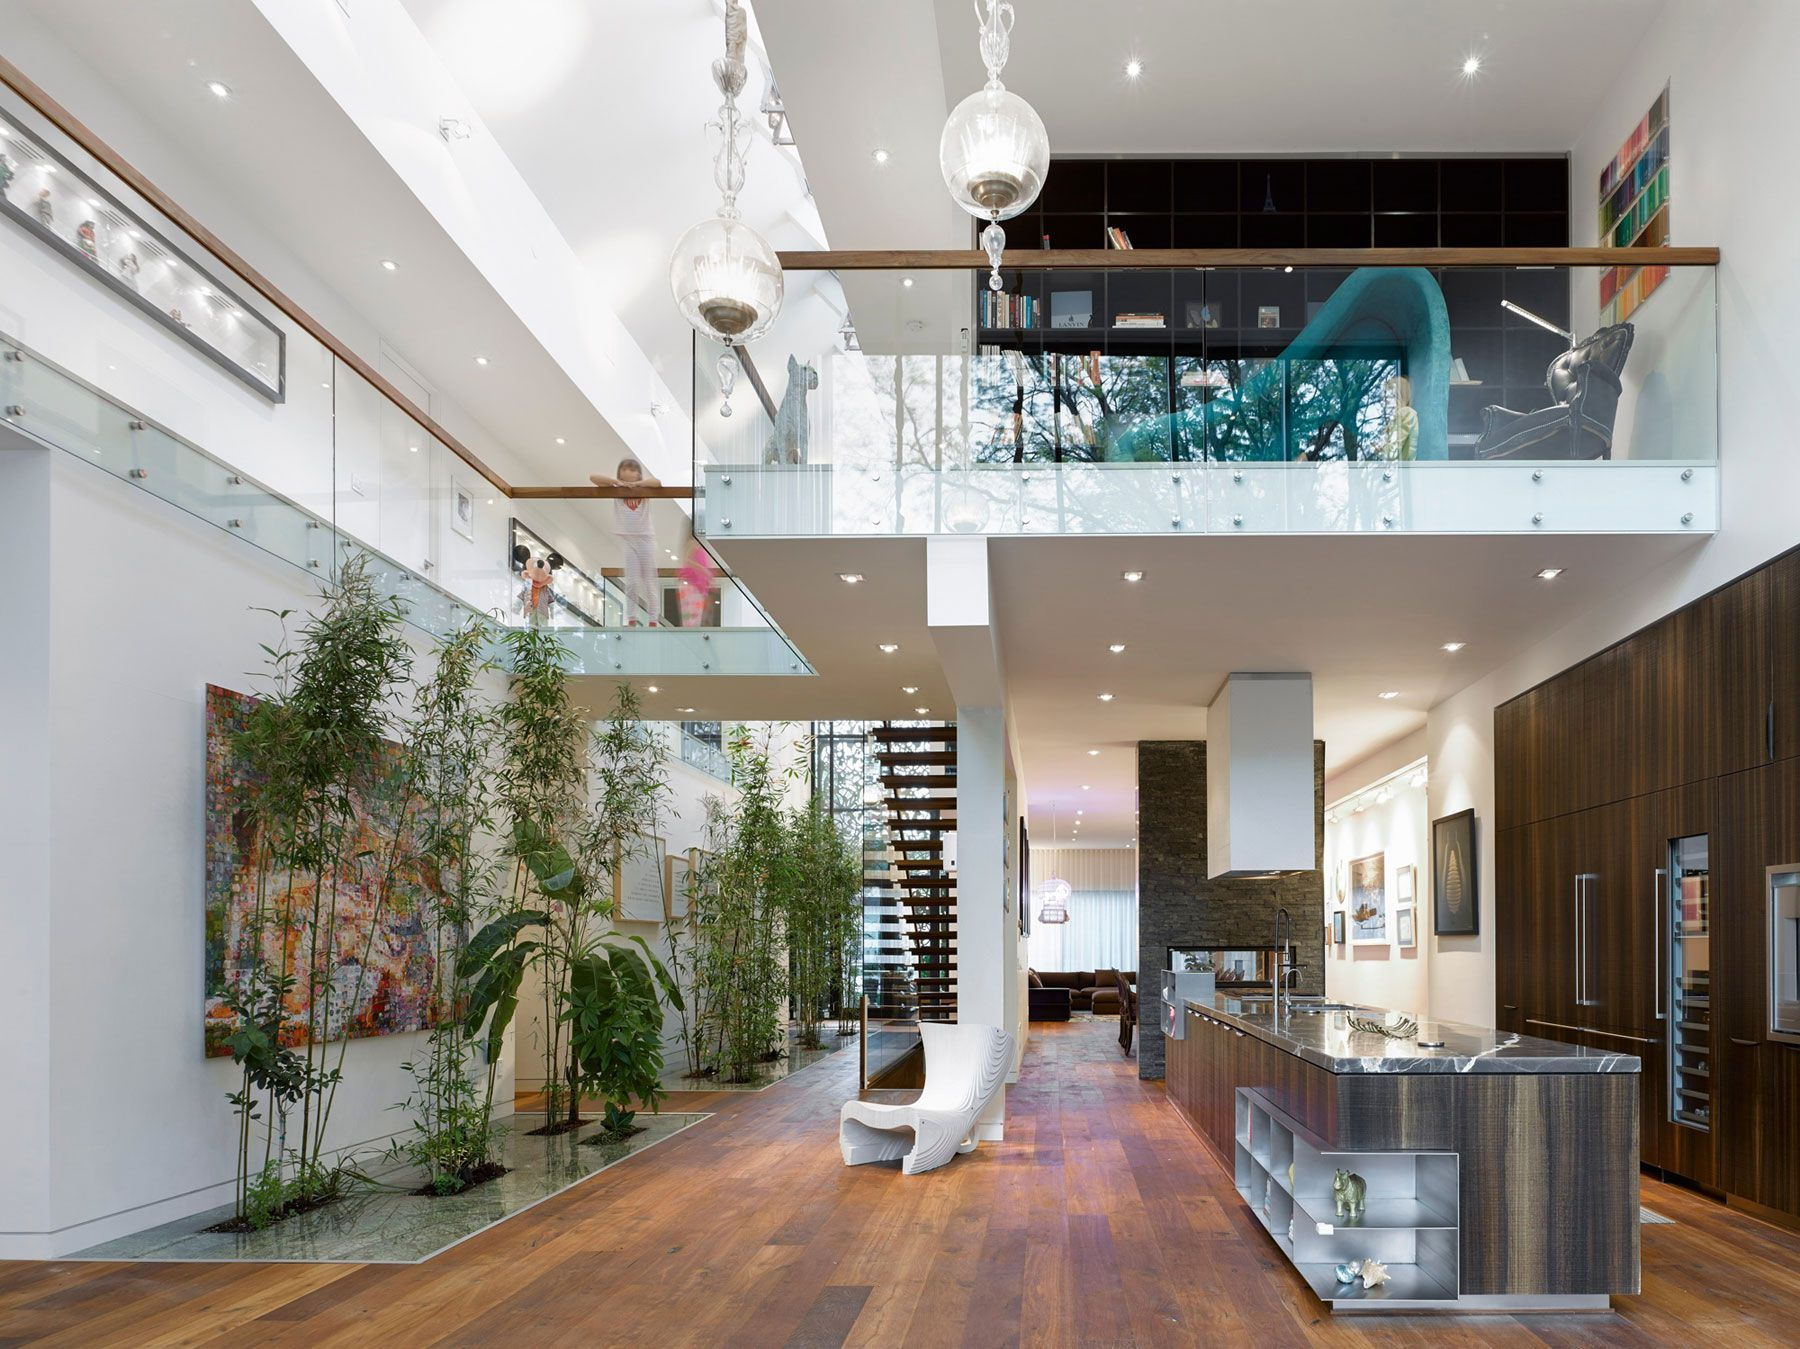 Aldo House By Prototype Design Lab   CAANdesign | Architecture And Home Design  Blog